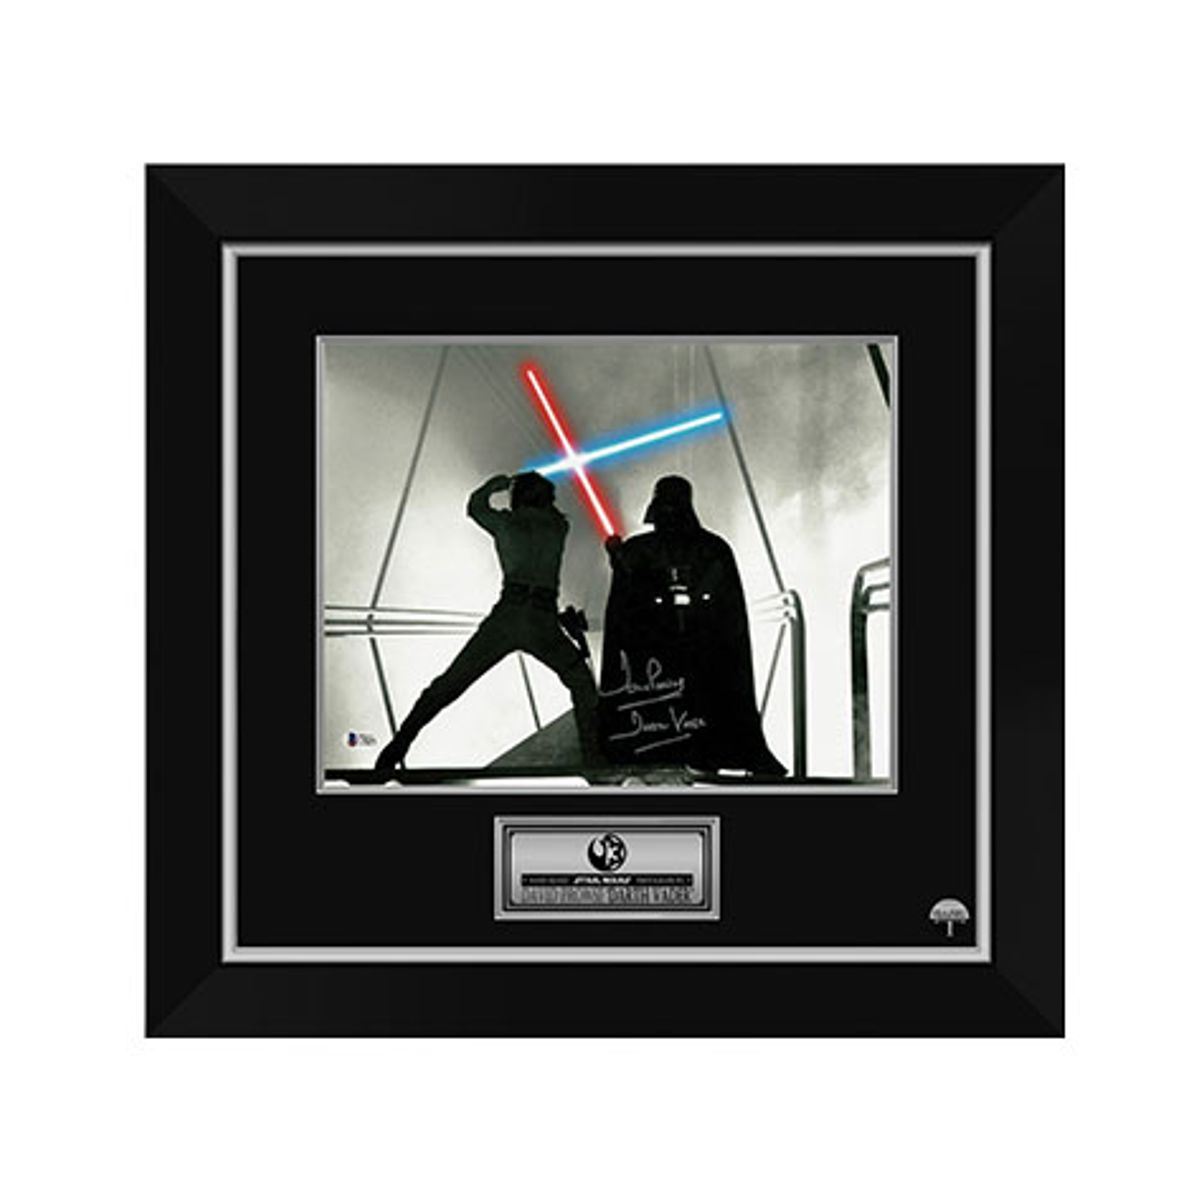 Save hundreds off this autographed Star Wars memorabilia